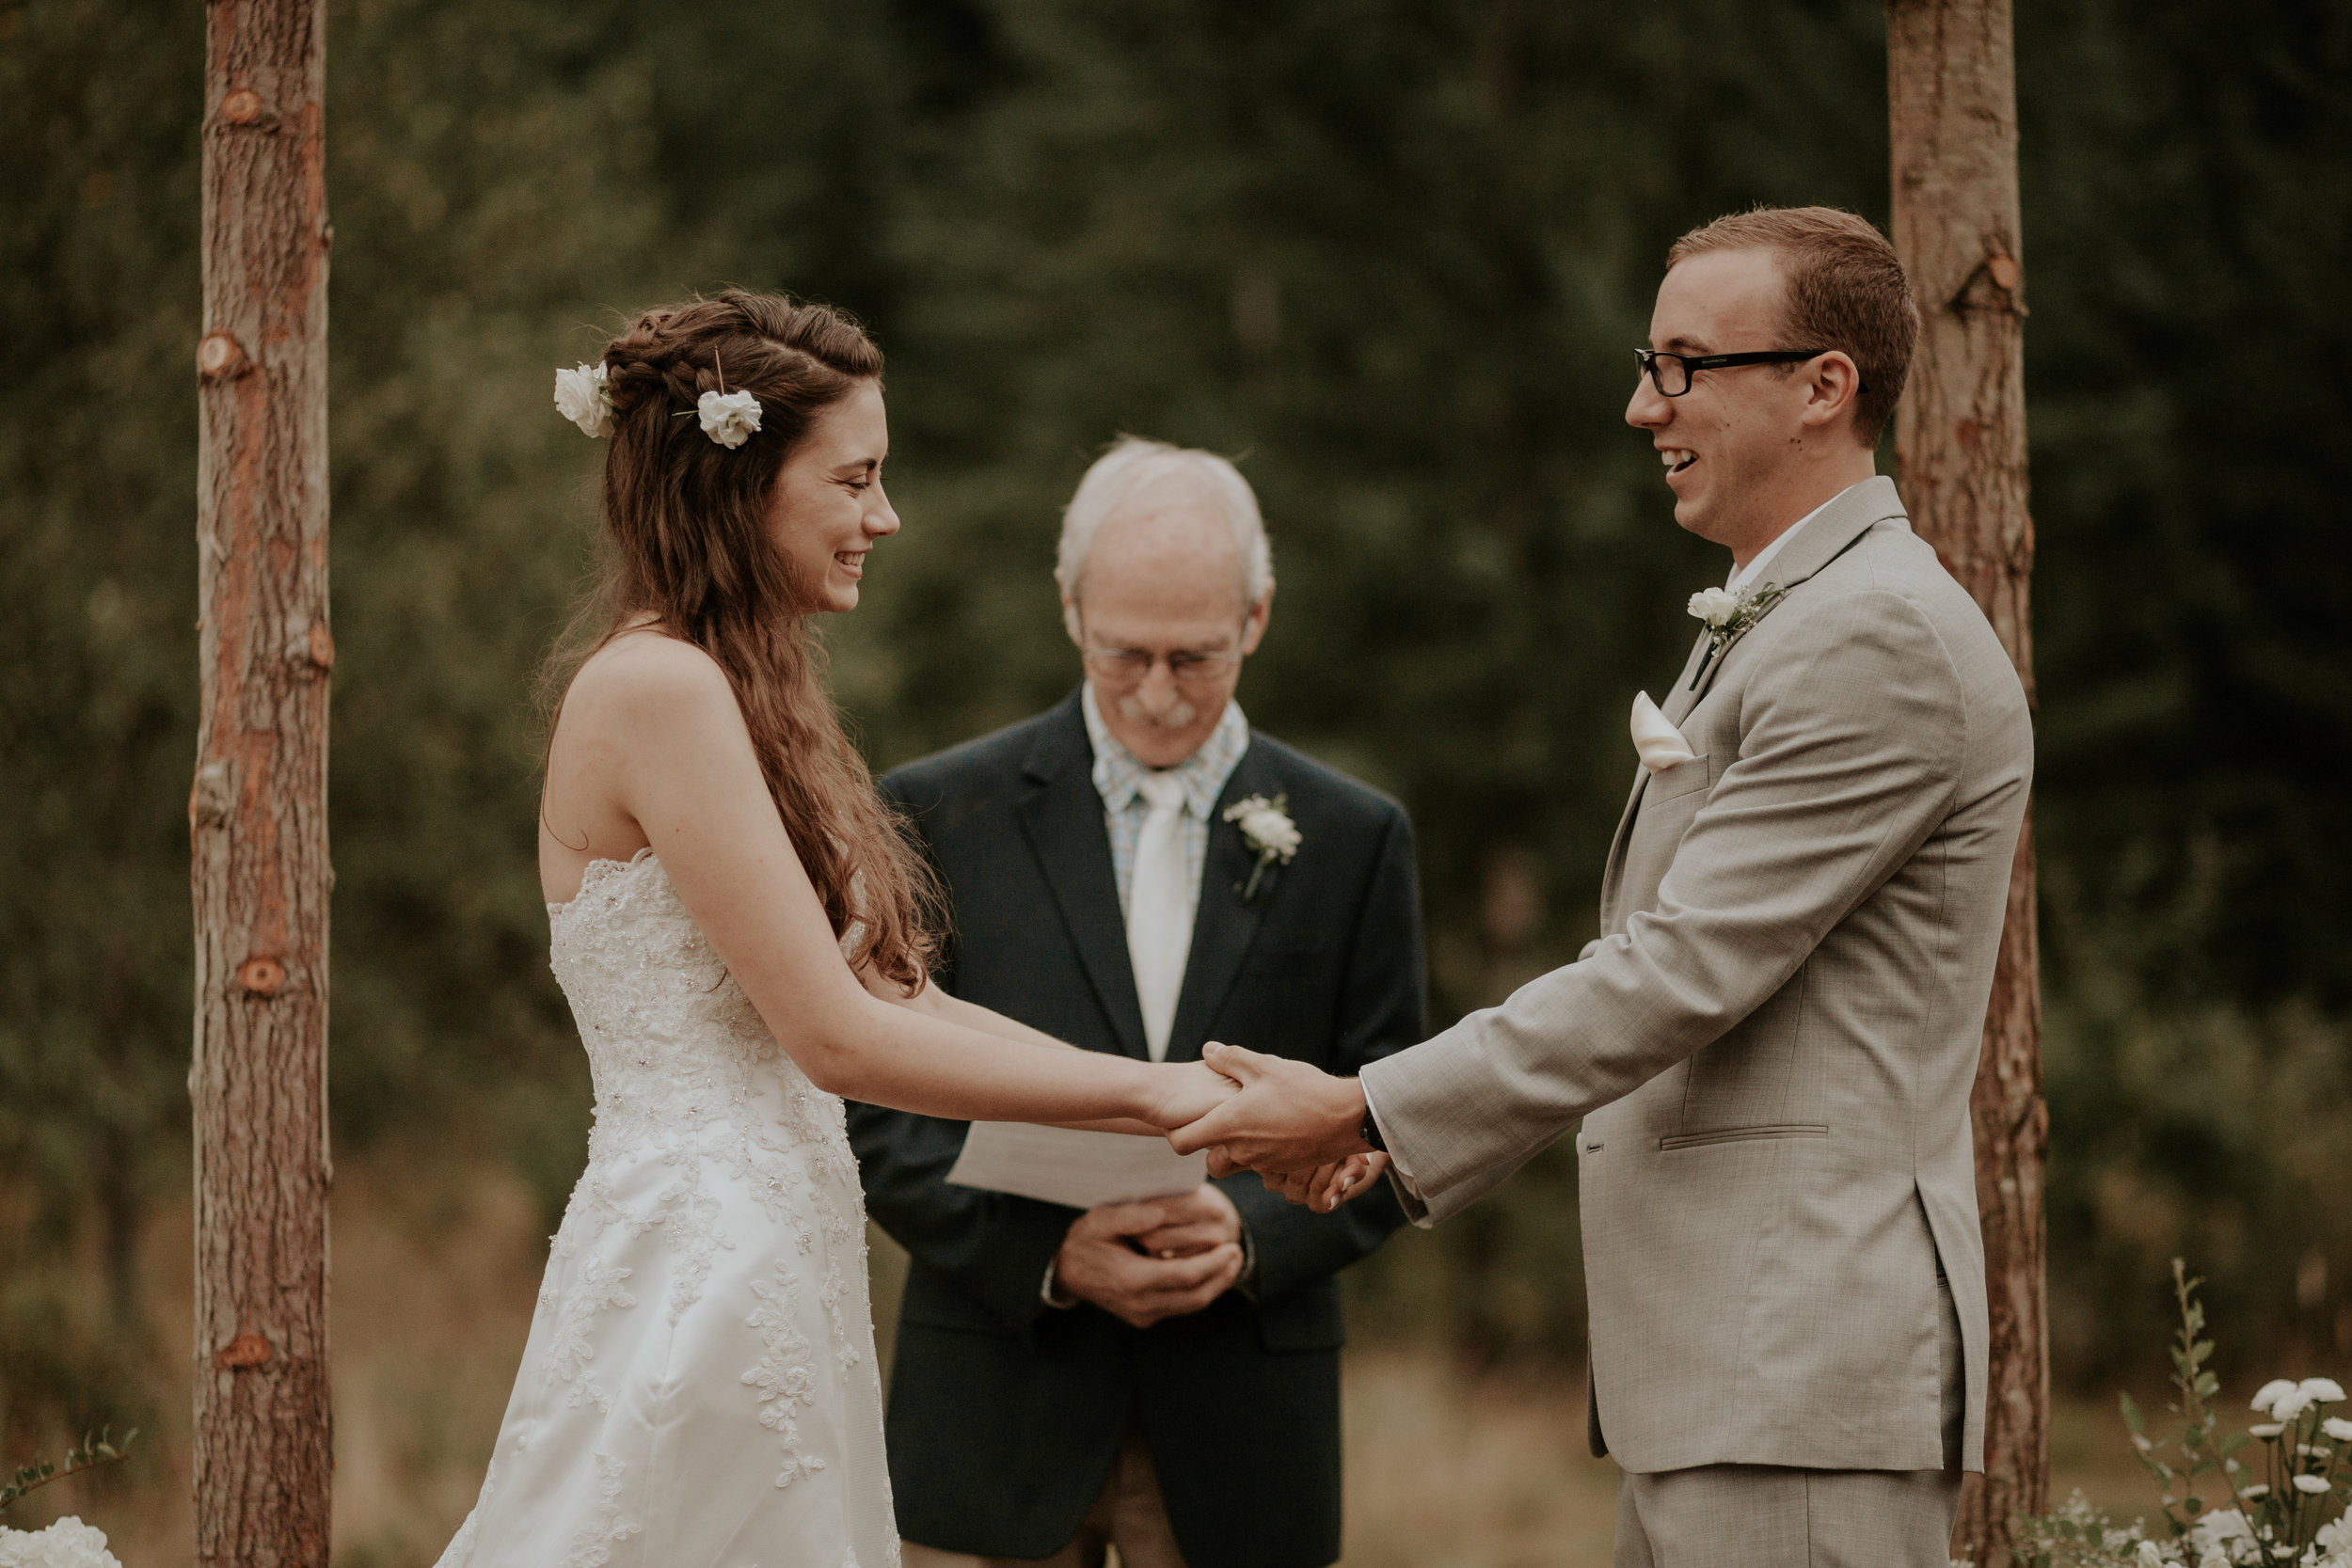 Port-Angeles-elopement-wedding-pnw-olympic-peninsula-photographer-portrait-kayladawnphoto-kayla-dawn-photography-olympic-national-park-74.jpg